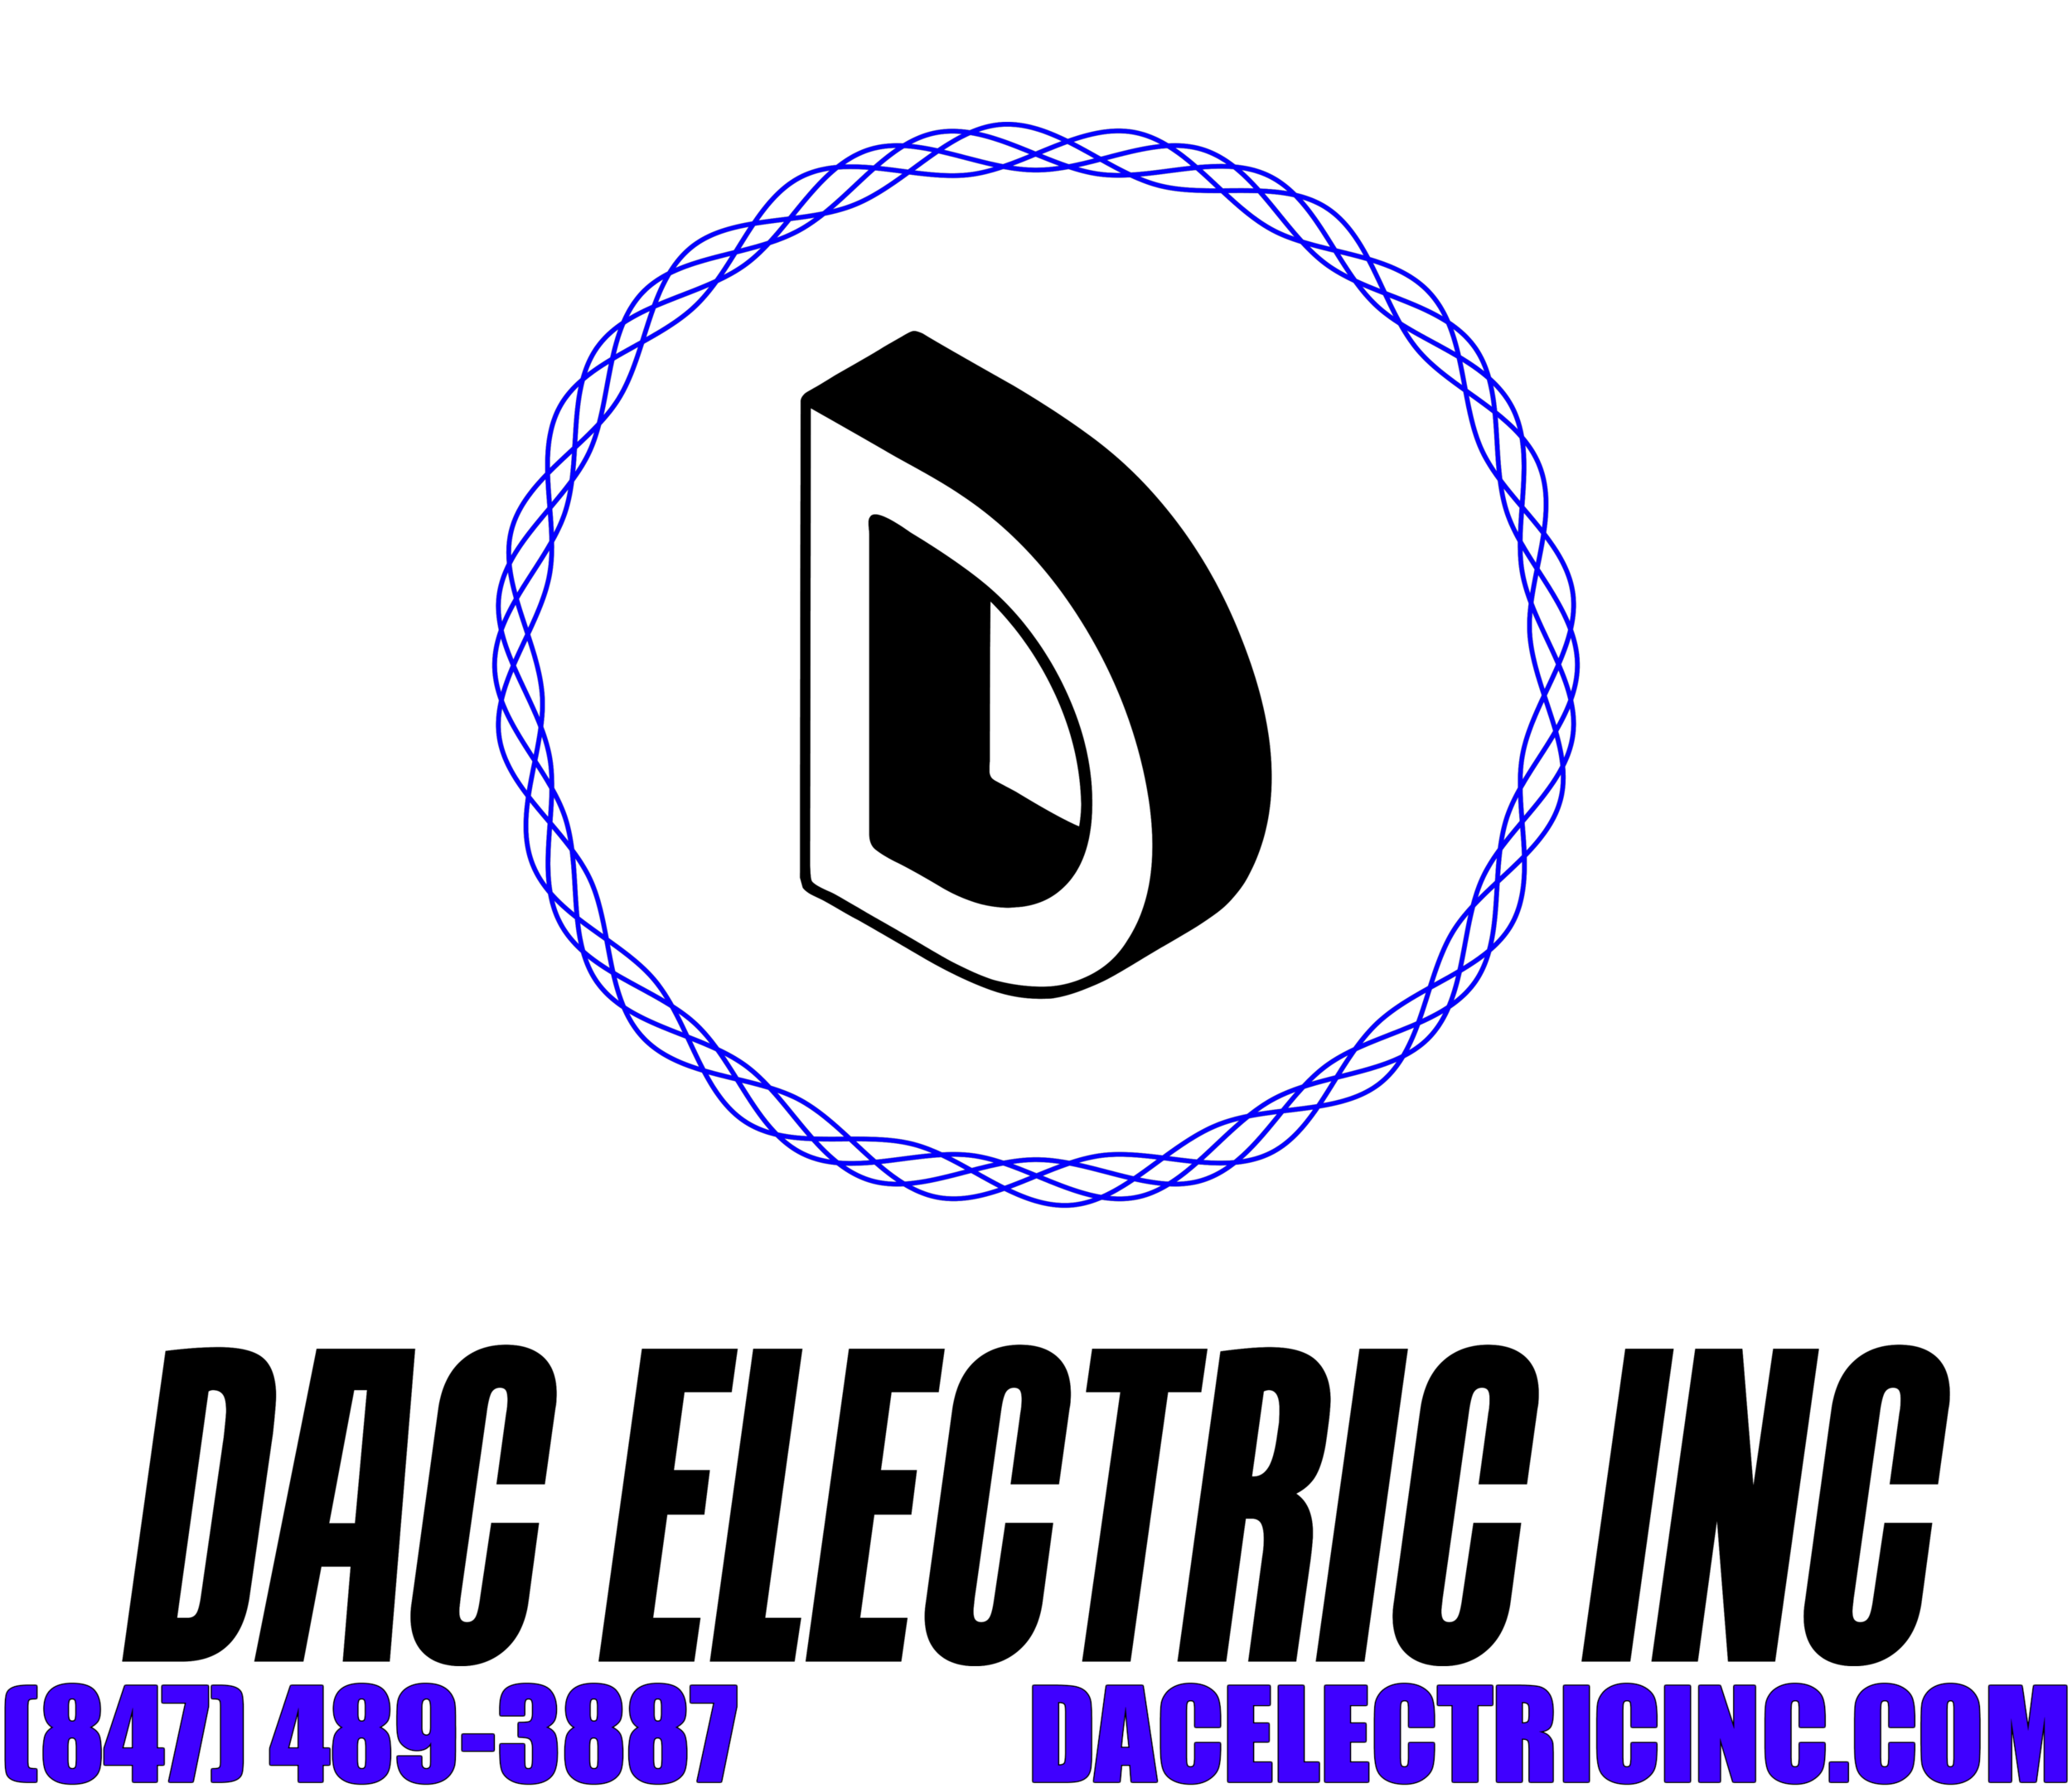 DAC Electric Logo with website and phone number (1).png